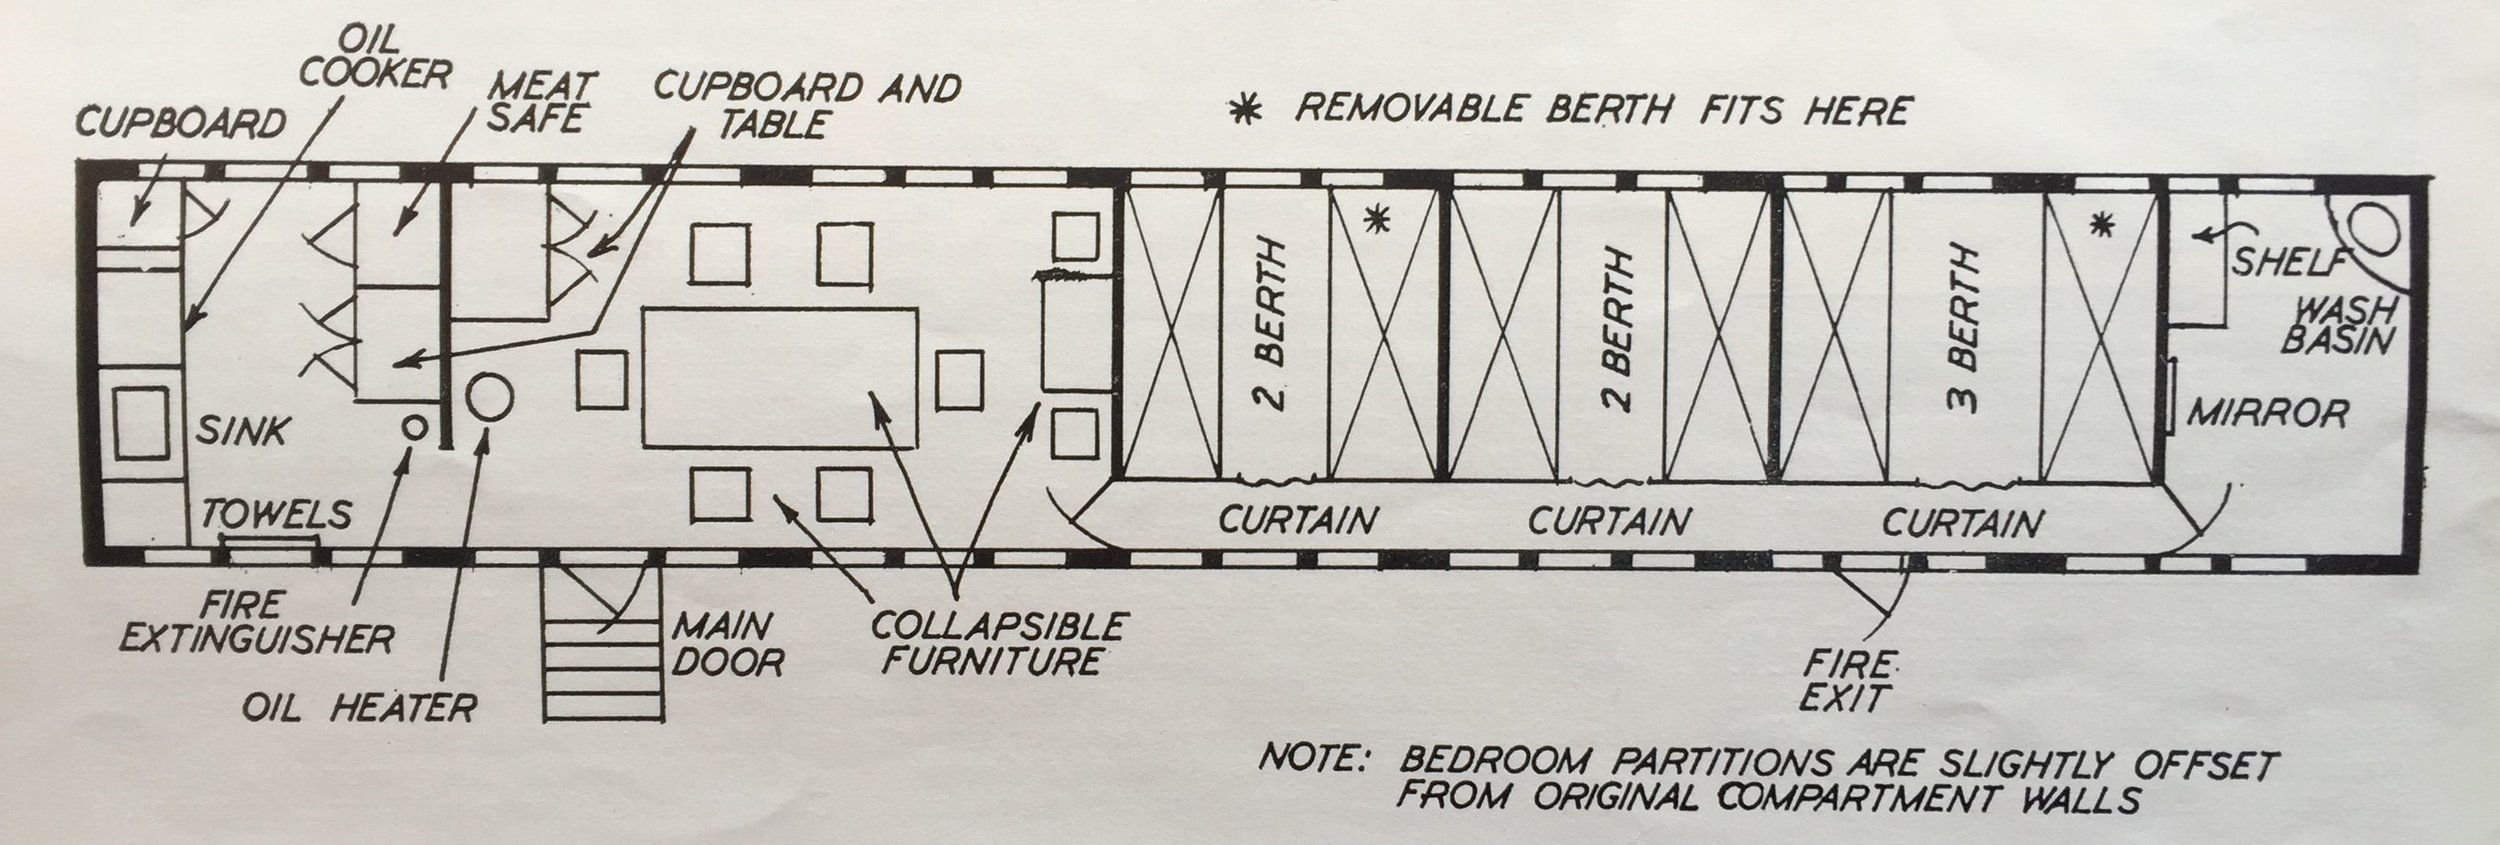 From an early British Railways Western Region publication, the furnishing arrangements for a Camping Coach converted from an old corridor coach.